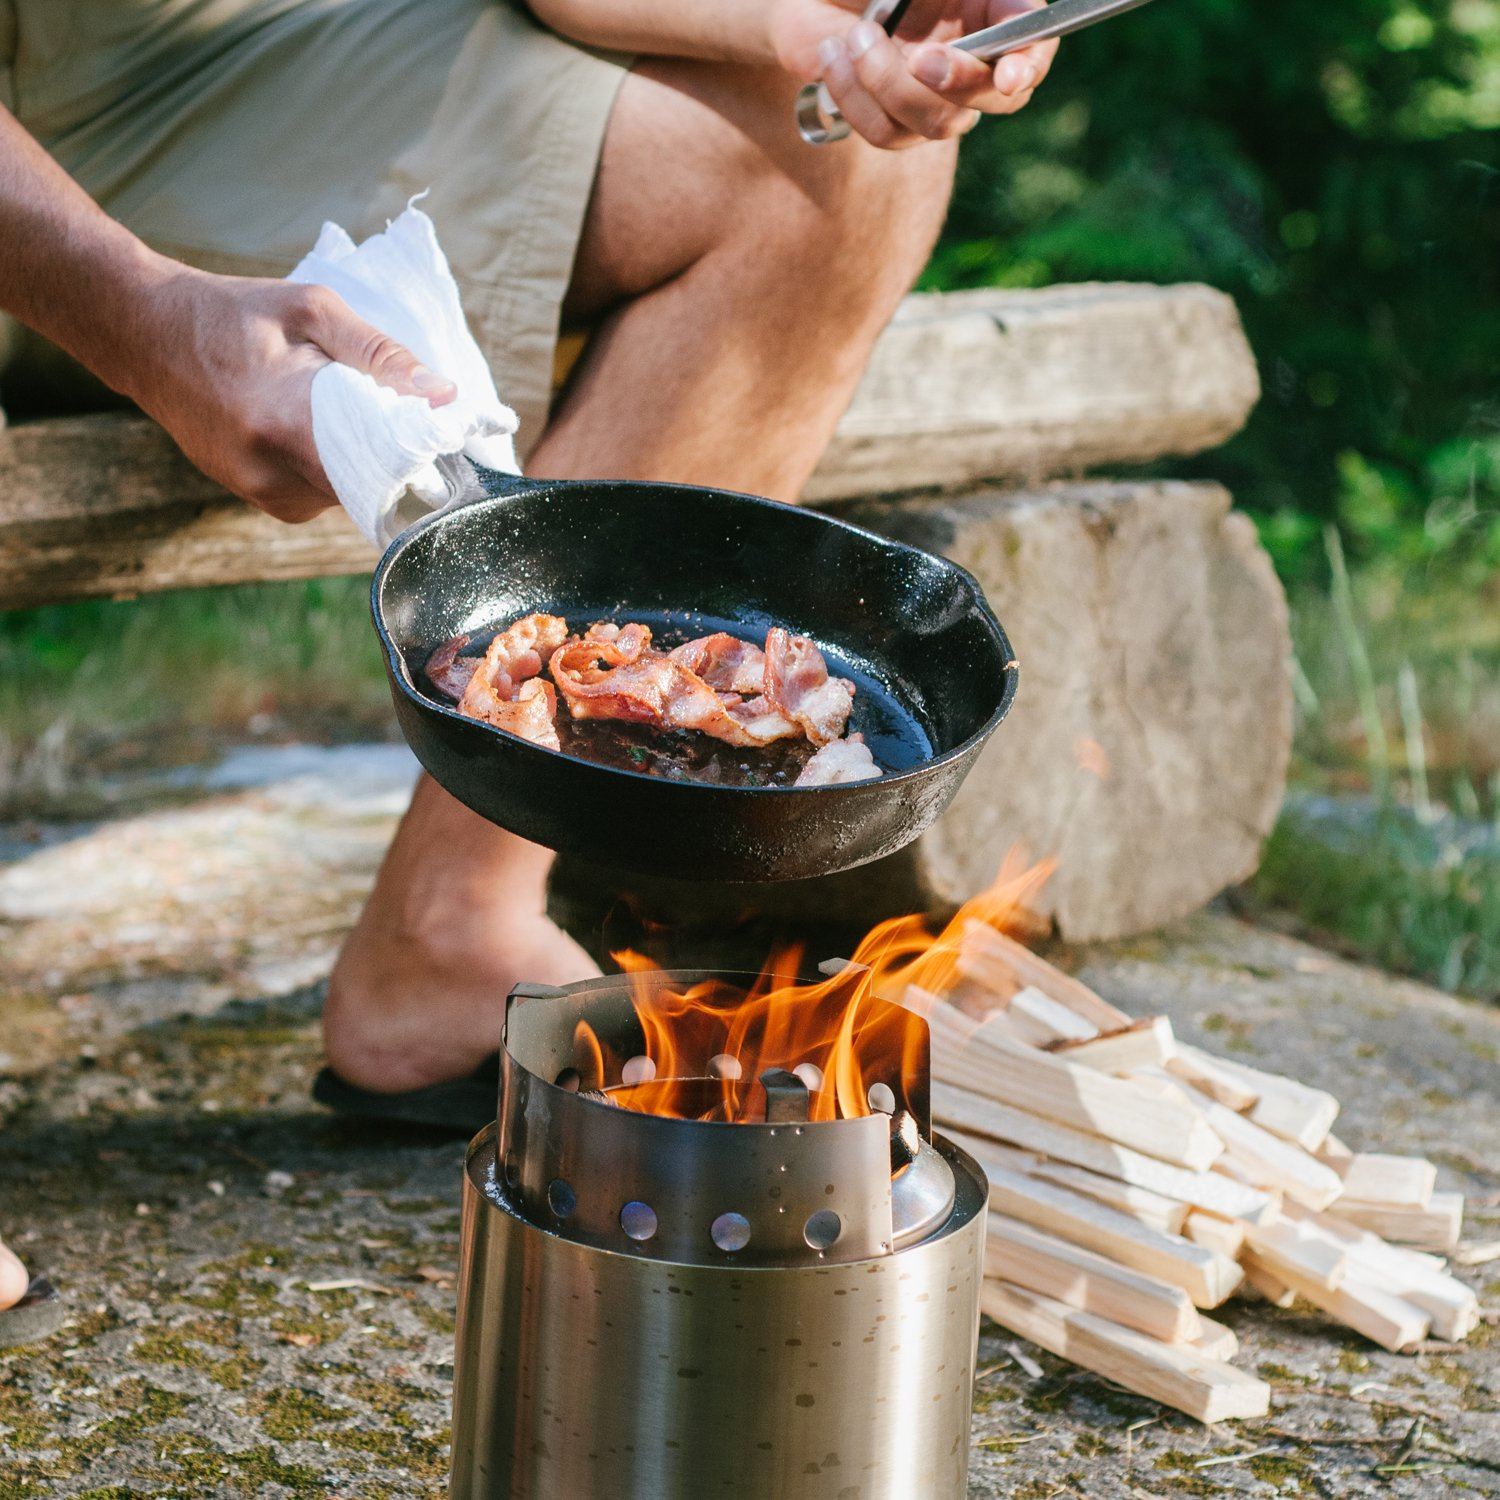 Largest Version of Original Solo Stove Great for Camping Hiking Emergency Preparation by Solo Stove Solo Stove Campfire Super-efficient Wood Burning Camping Stove Survival